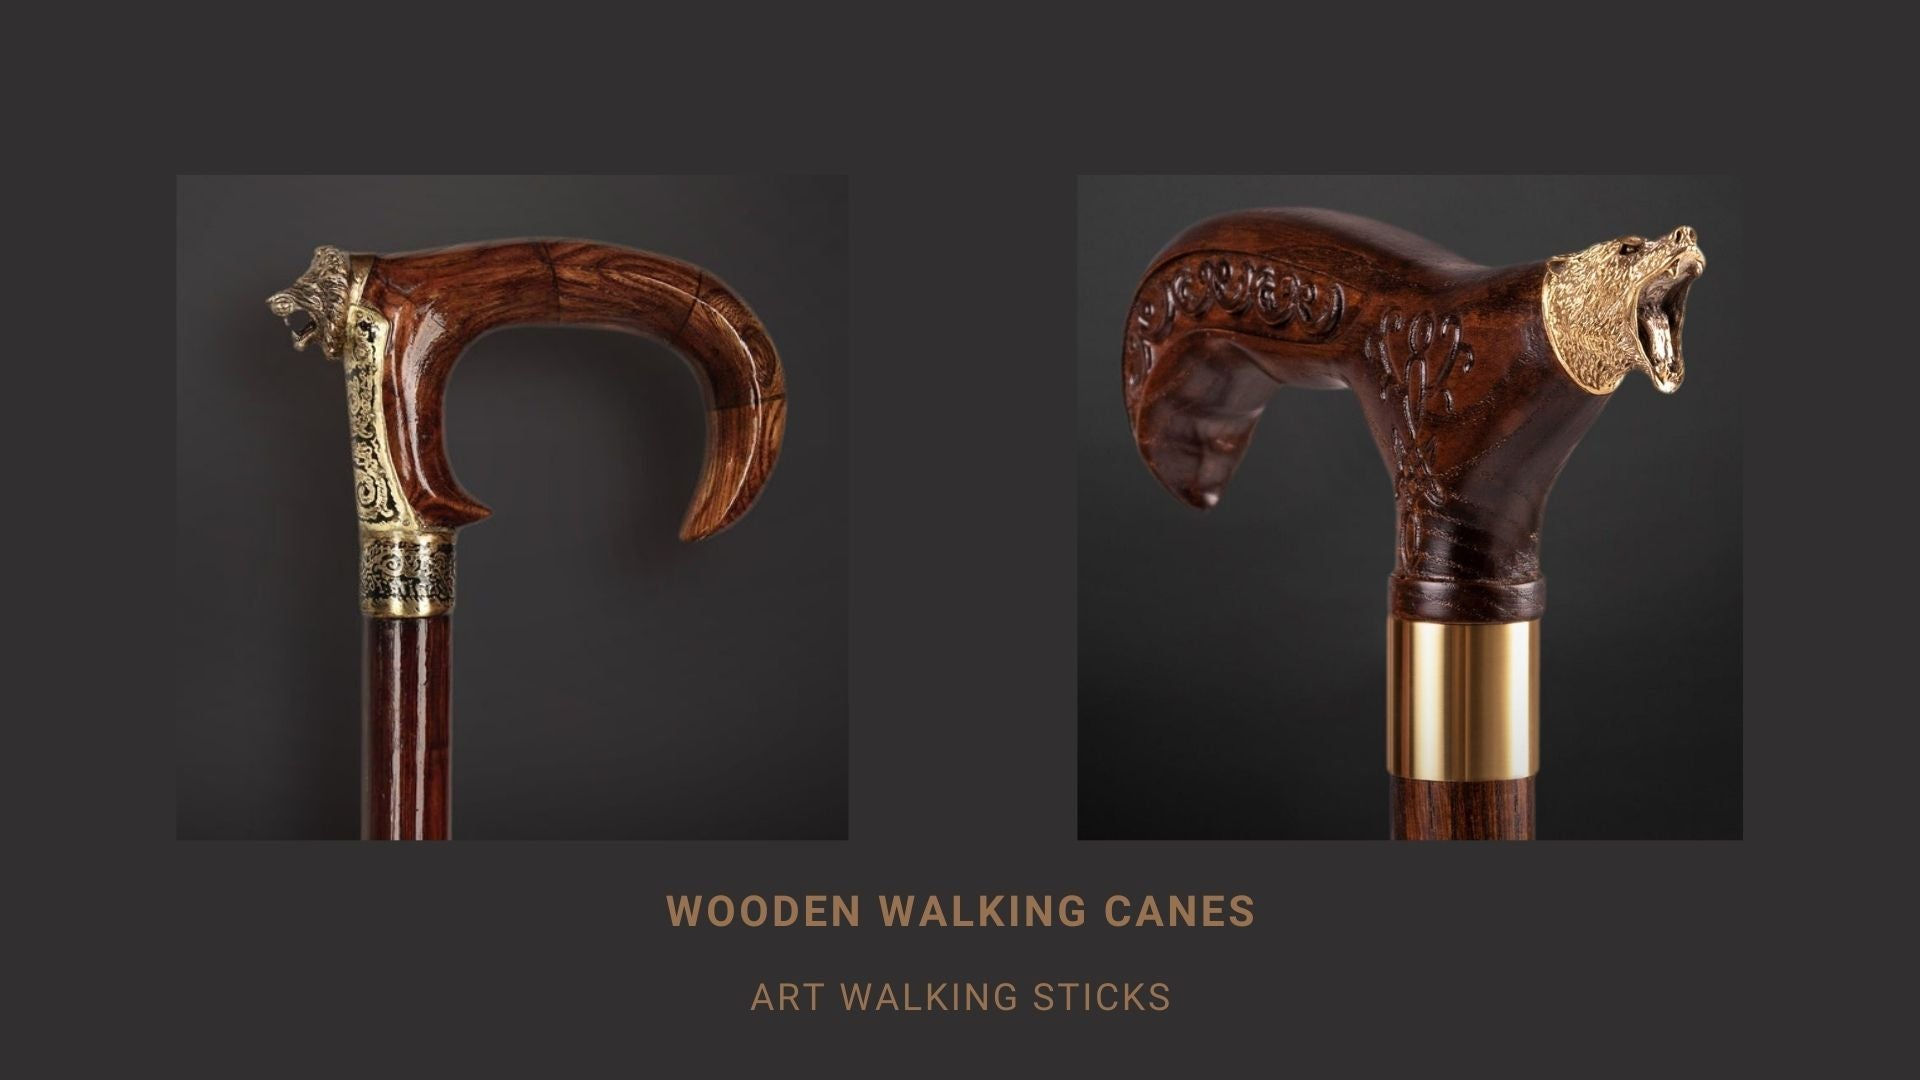 Benefits of wooden walking canes